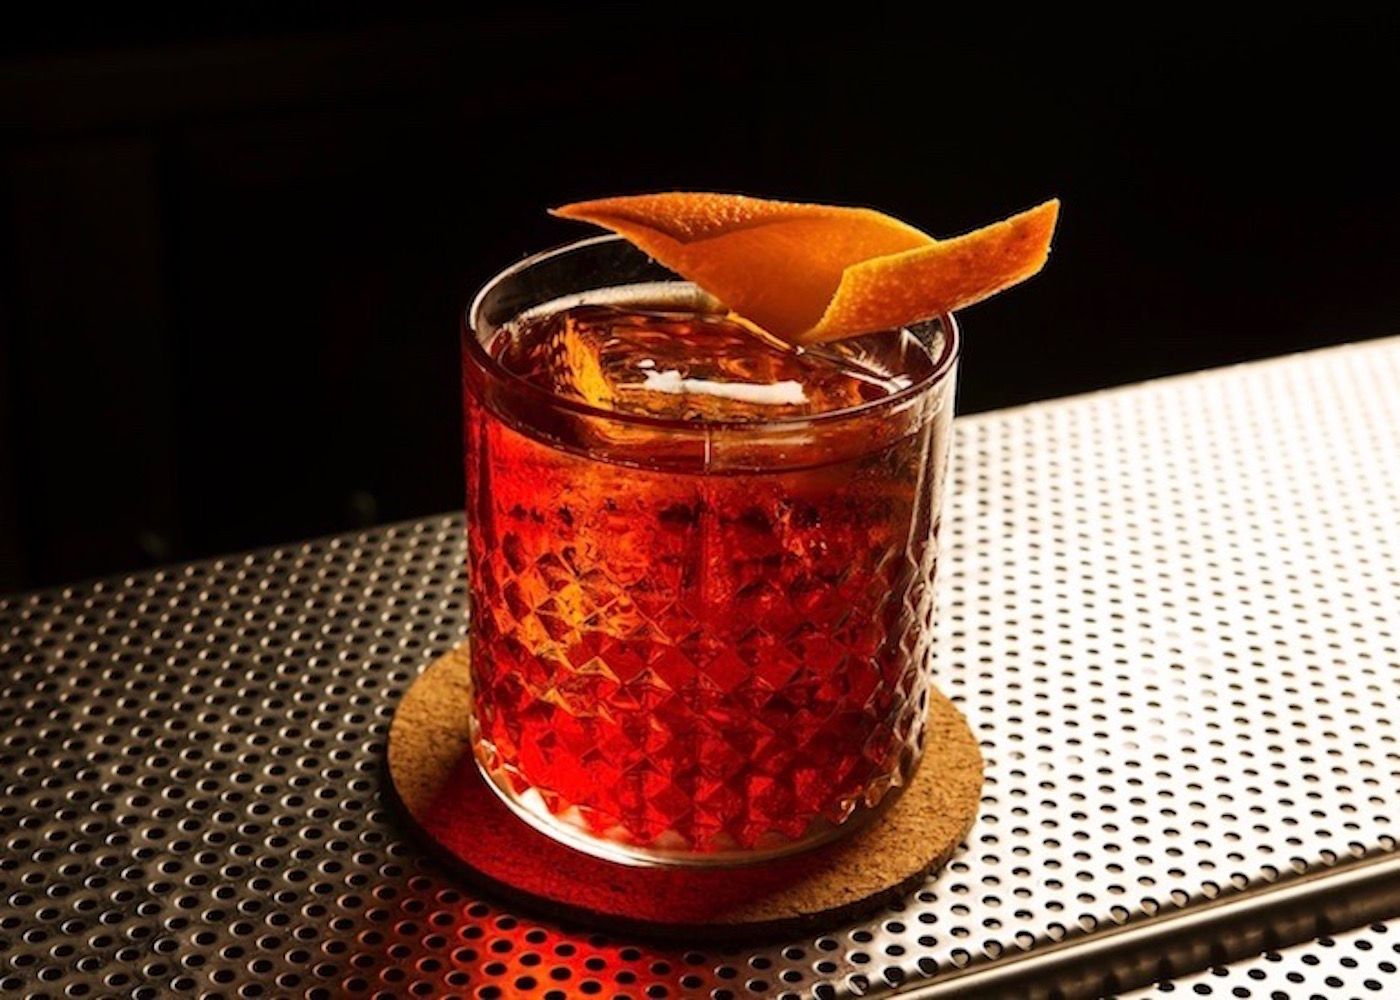 Wild Turkey Negroni at 40 Thieves cocktail bar in Seminyak, Bali, Indonesia